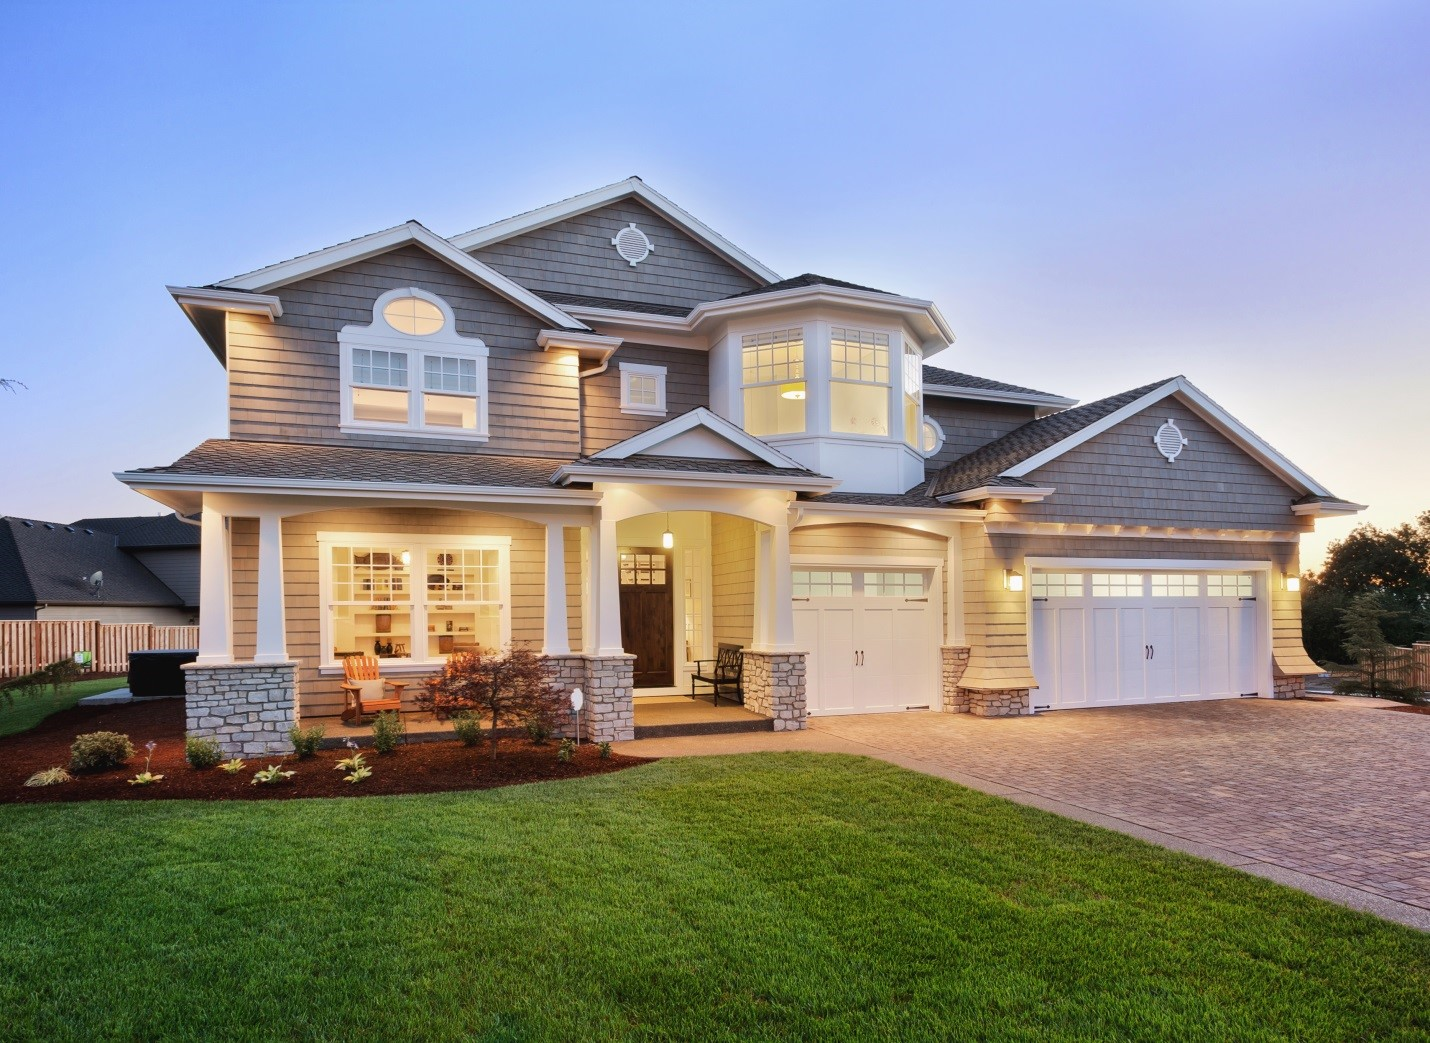 How to Find the Right Home Automation Company for You